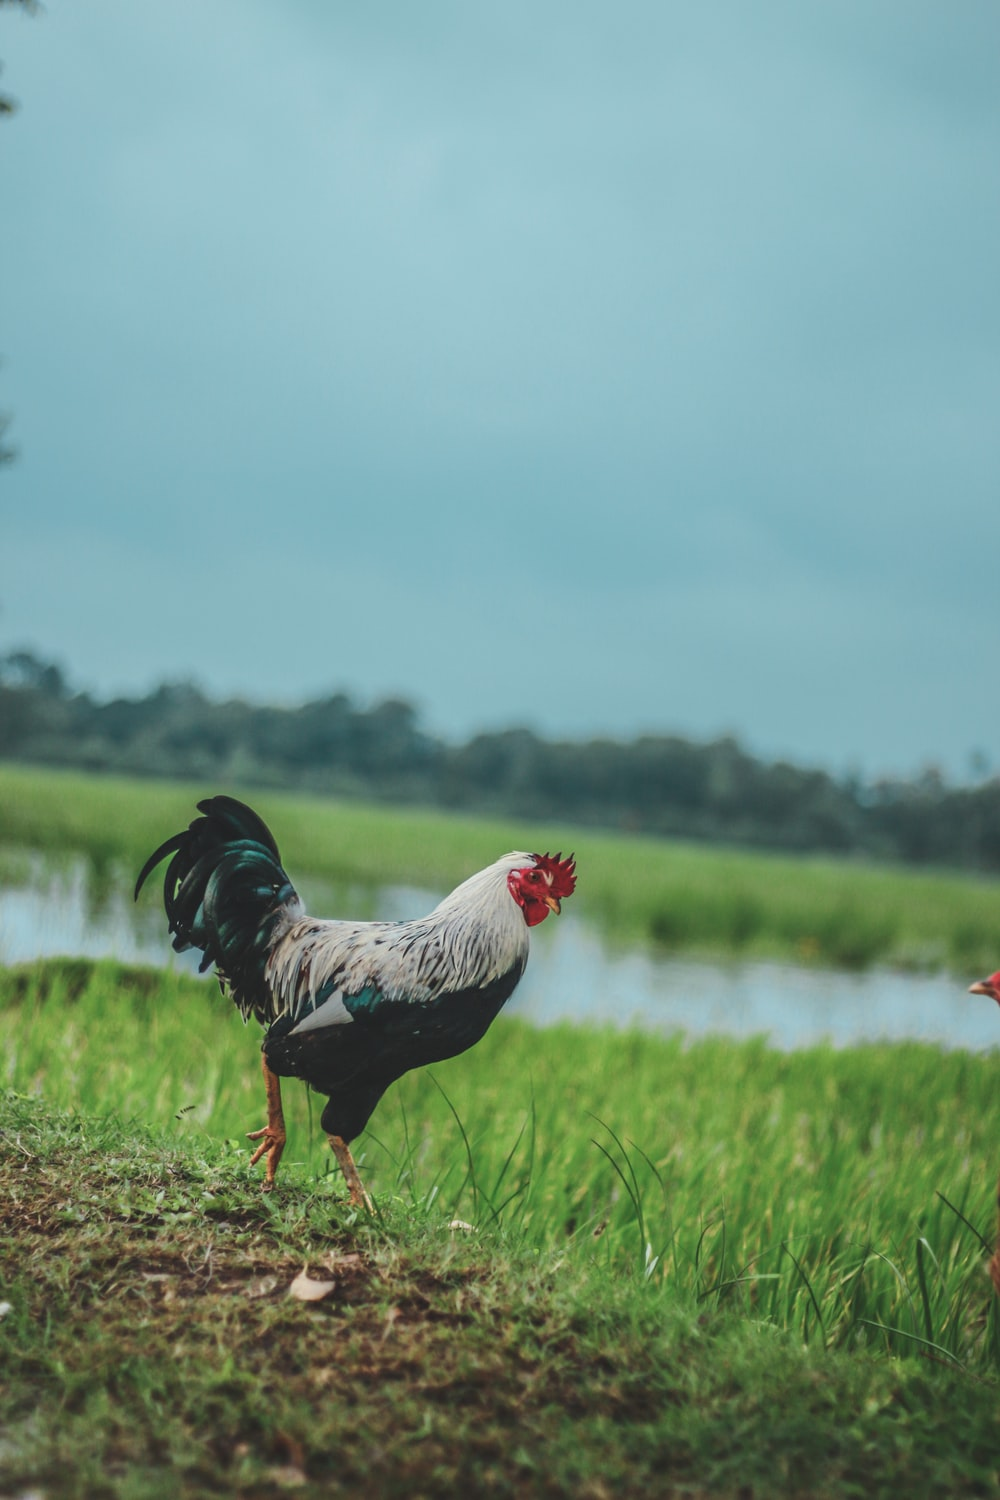 black and white rooster on grass field